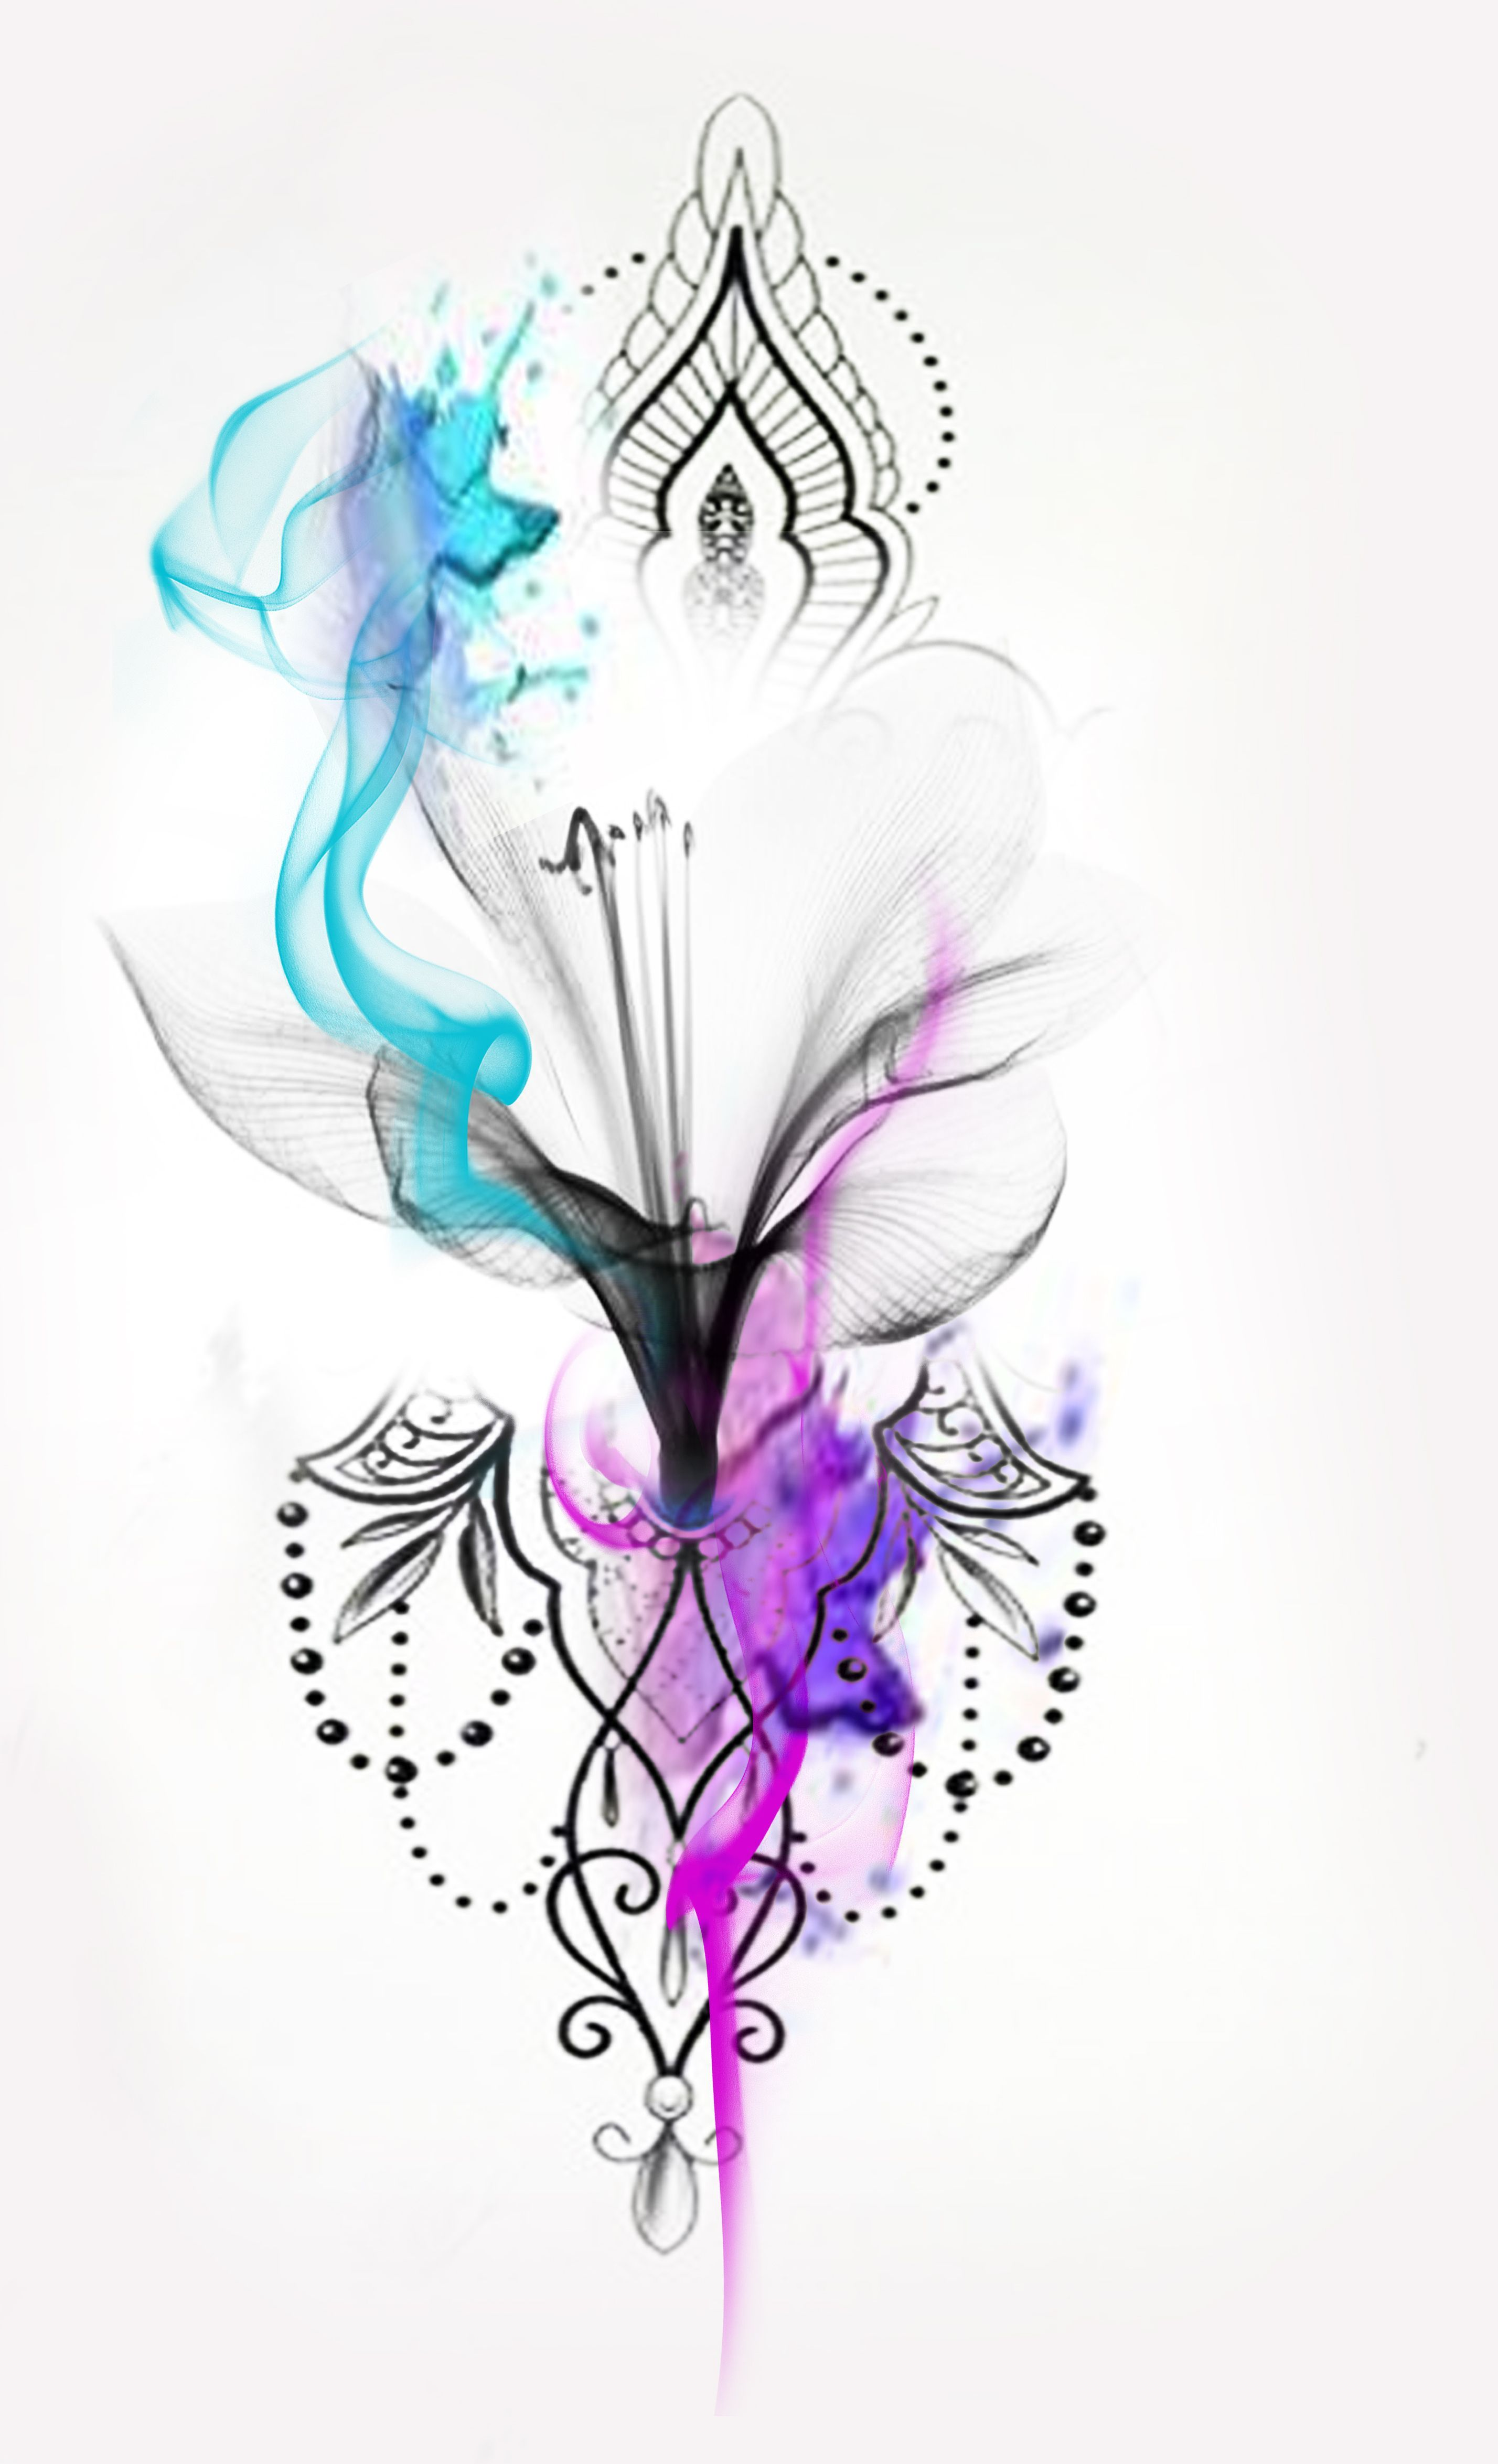 X Ray Watercolor Flower Watercolor Tattoo X Ray Flower X Ray Tattoo Watercolour Tattoo Mandala Flowe In 2020 Ink Tattoo Girl Watercolor Tattoo Flower Flower Tattoos